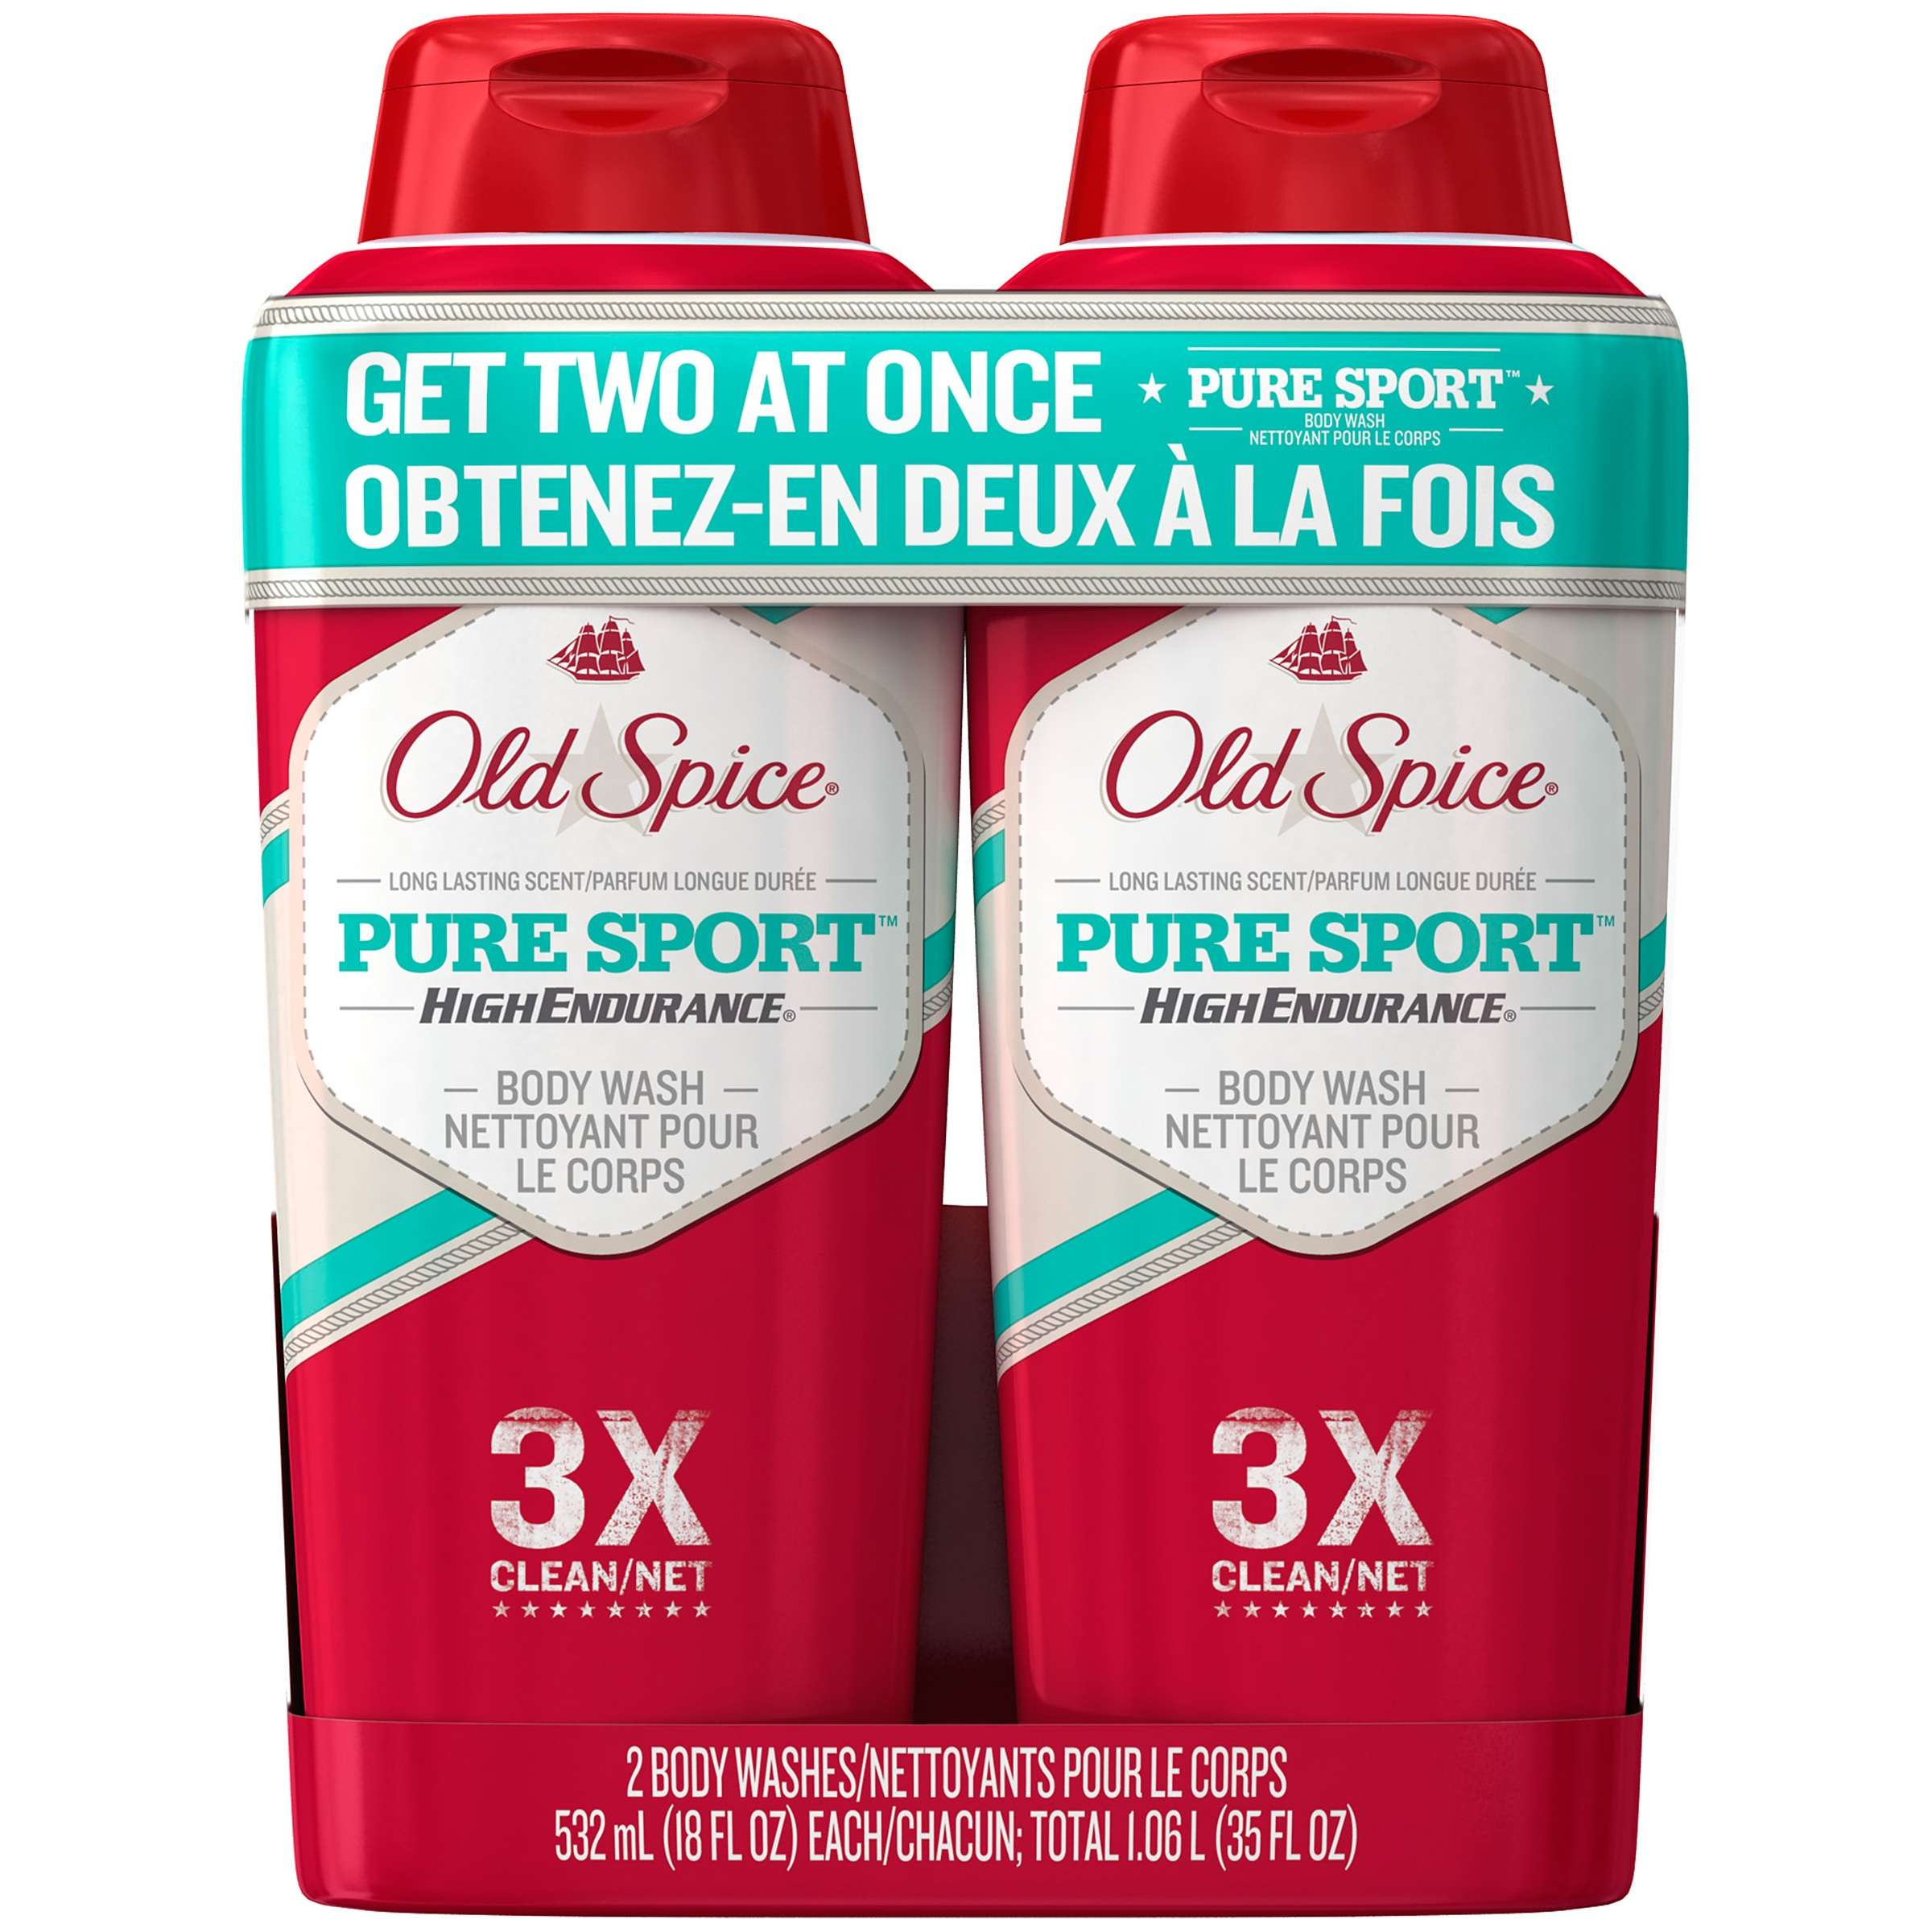 Old Spice High Endurance Pure Sport Body Wash 18 oz Twin Pack